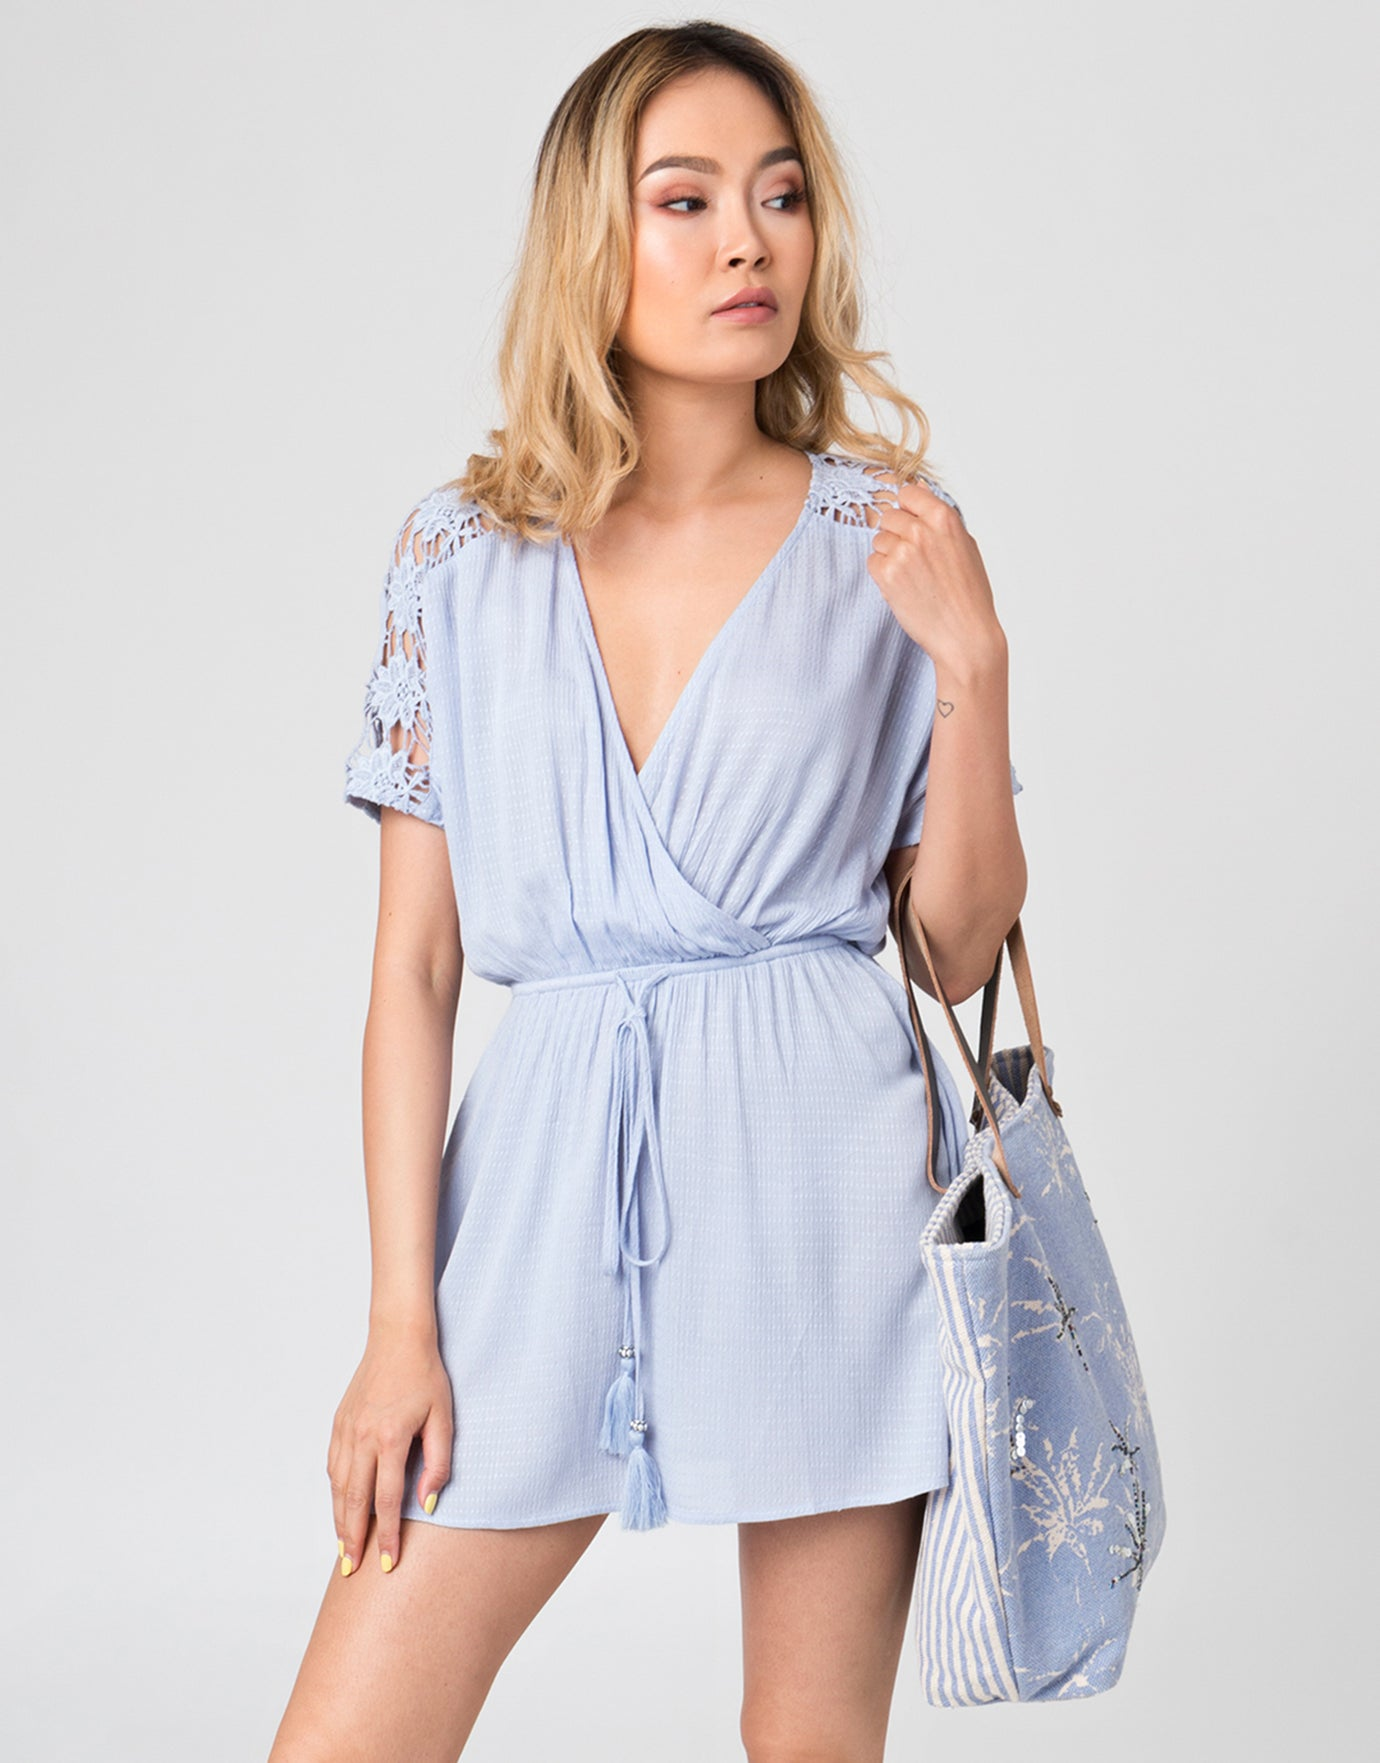 Pia Rossini Aubree Dress - Blue